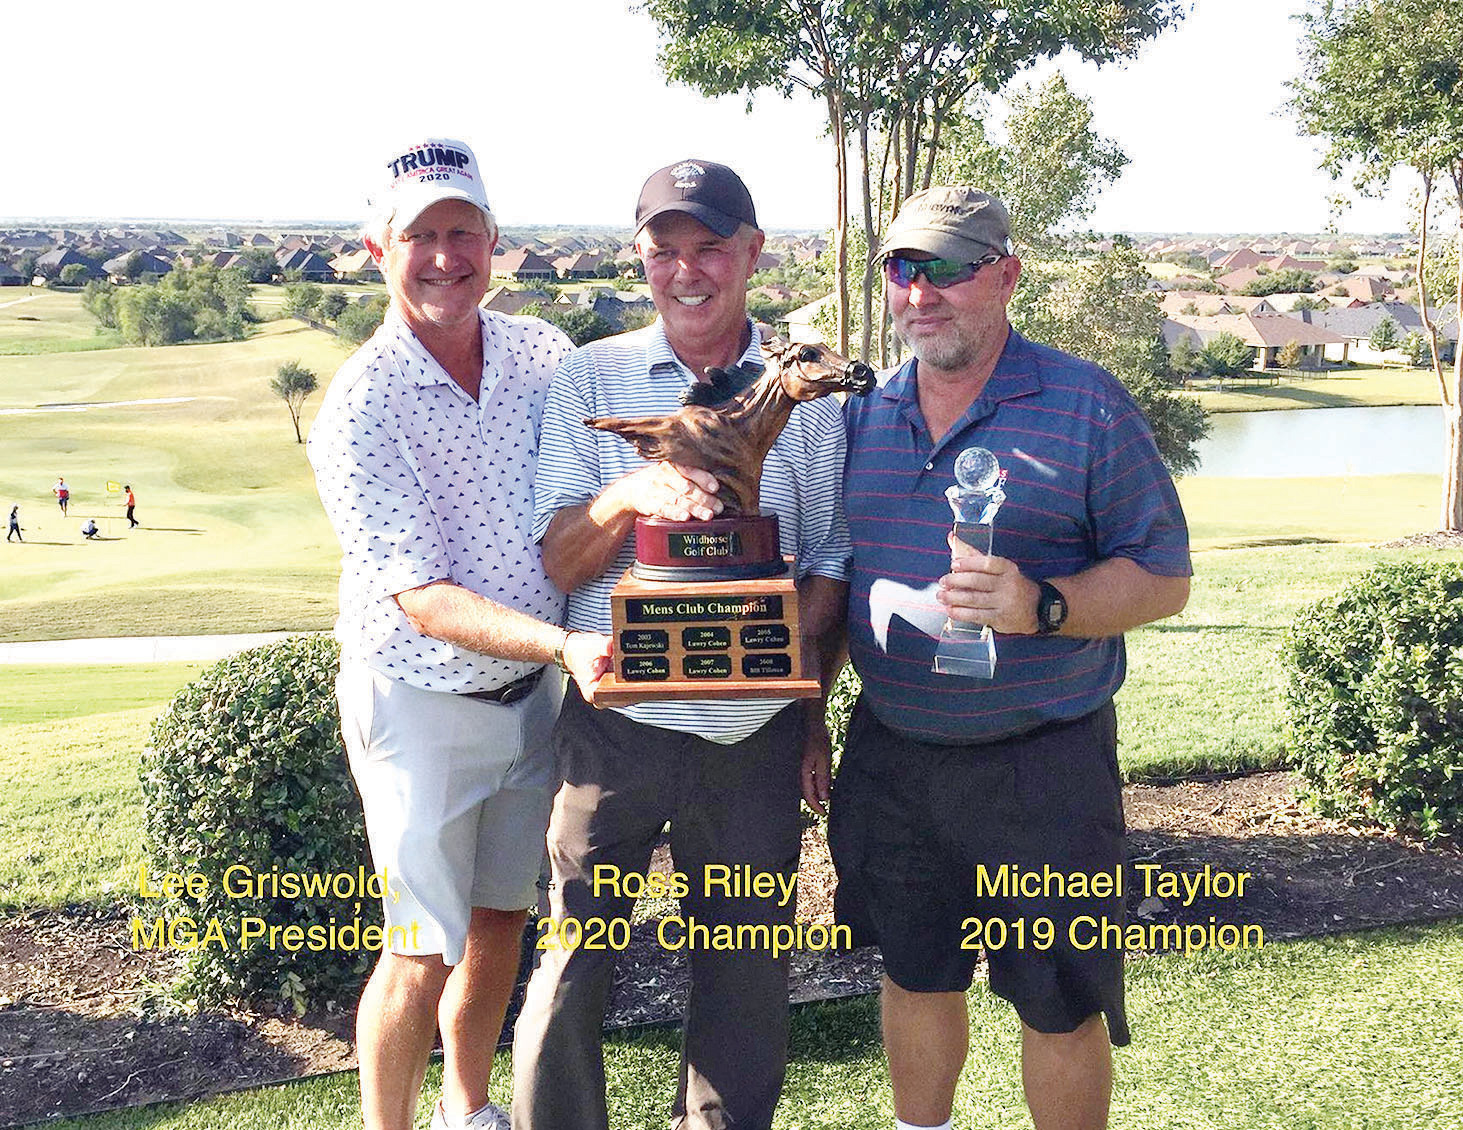 RRMGA President Lee Griswold and 2019 Champion Michael Taylor presenting the trophy to Ross Riley.